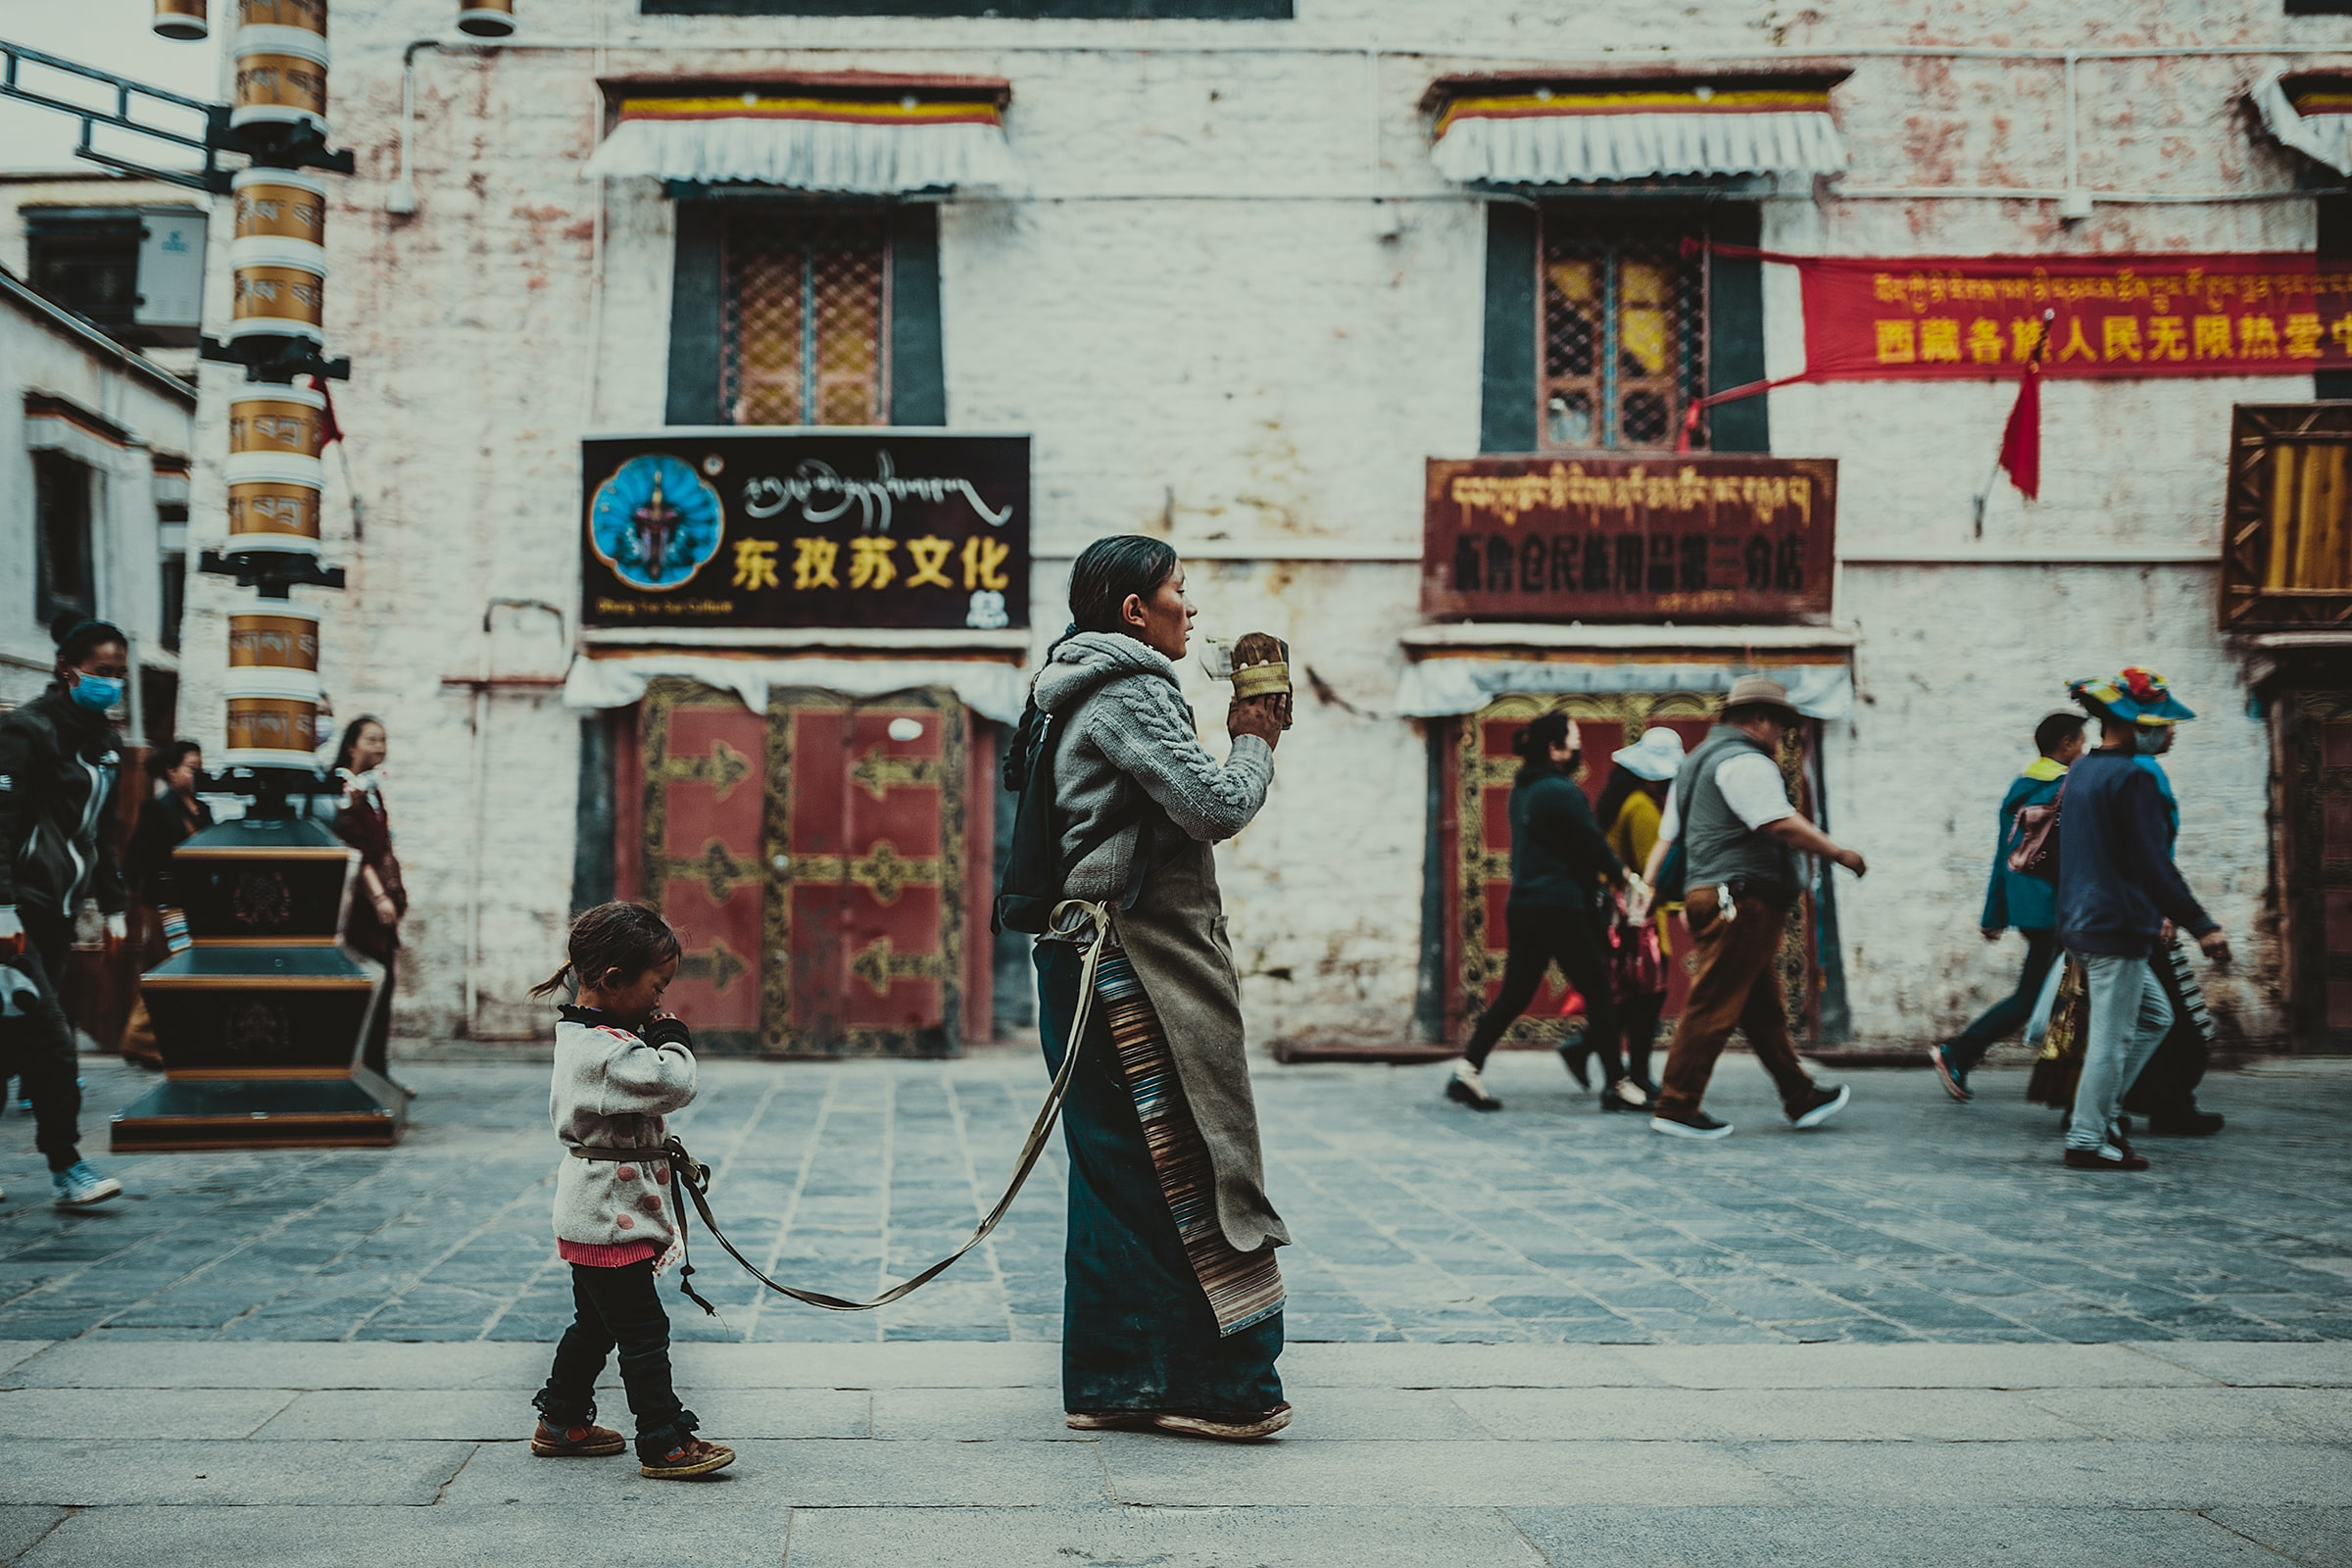 A woman with a child strapped to her walks down a crowded city street